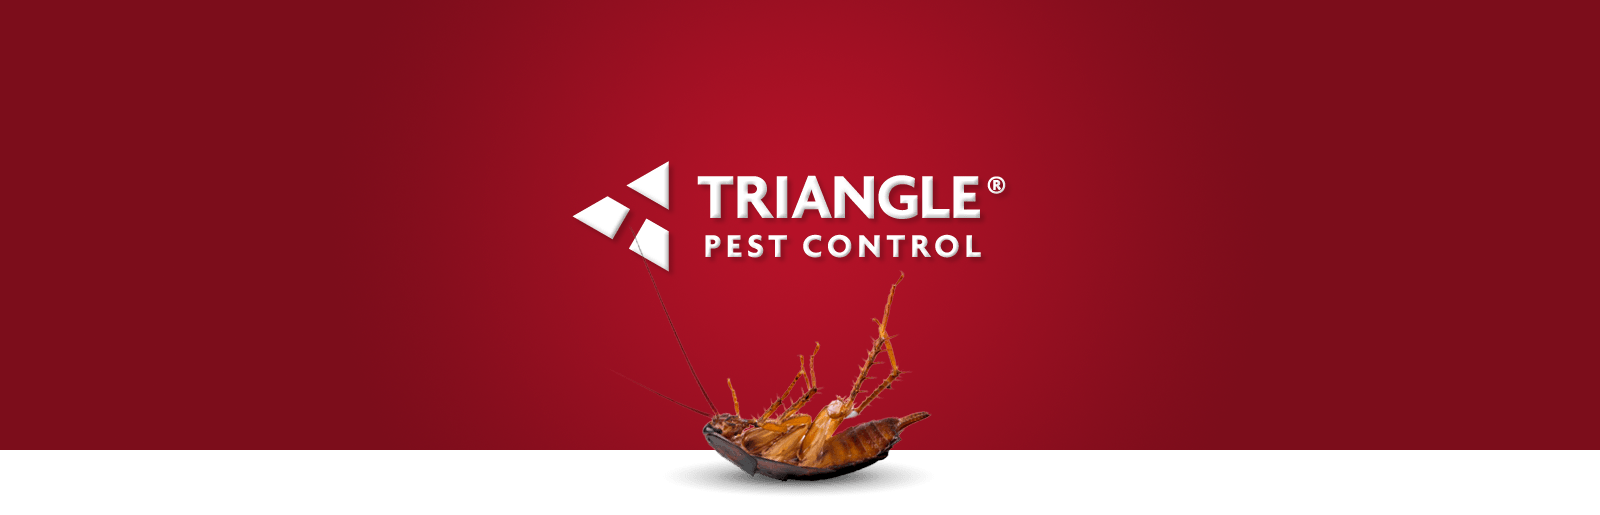 triangle-pest-control-header_0.png